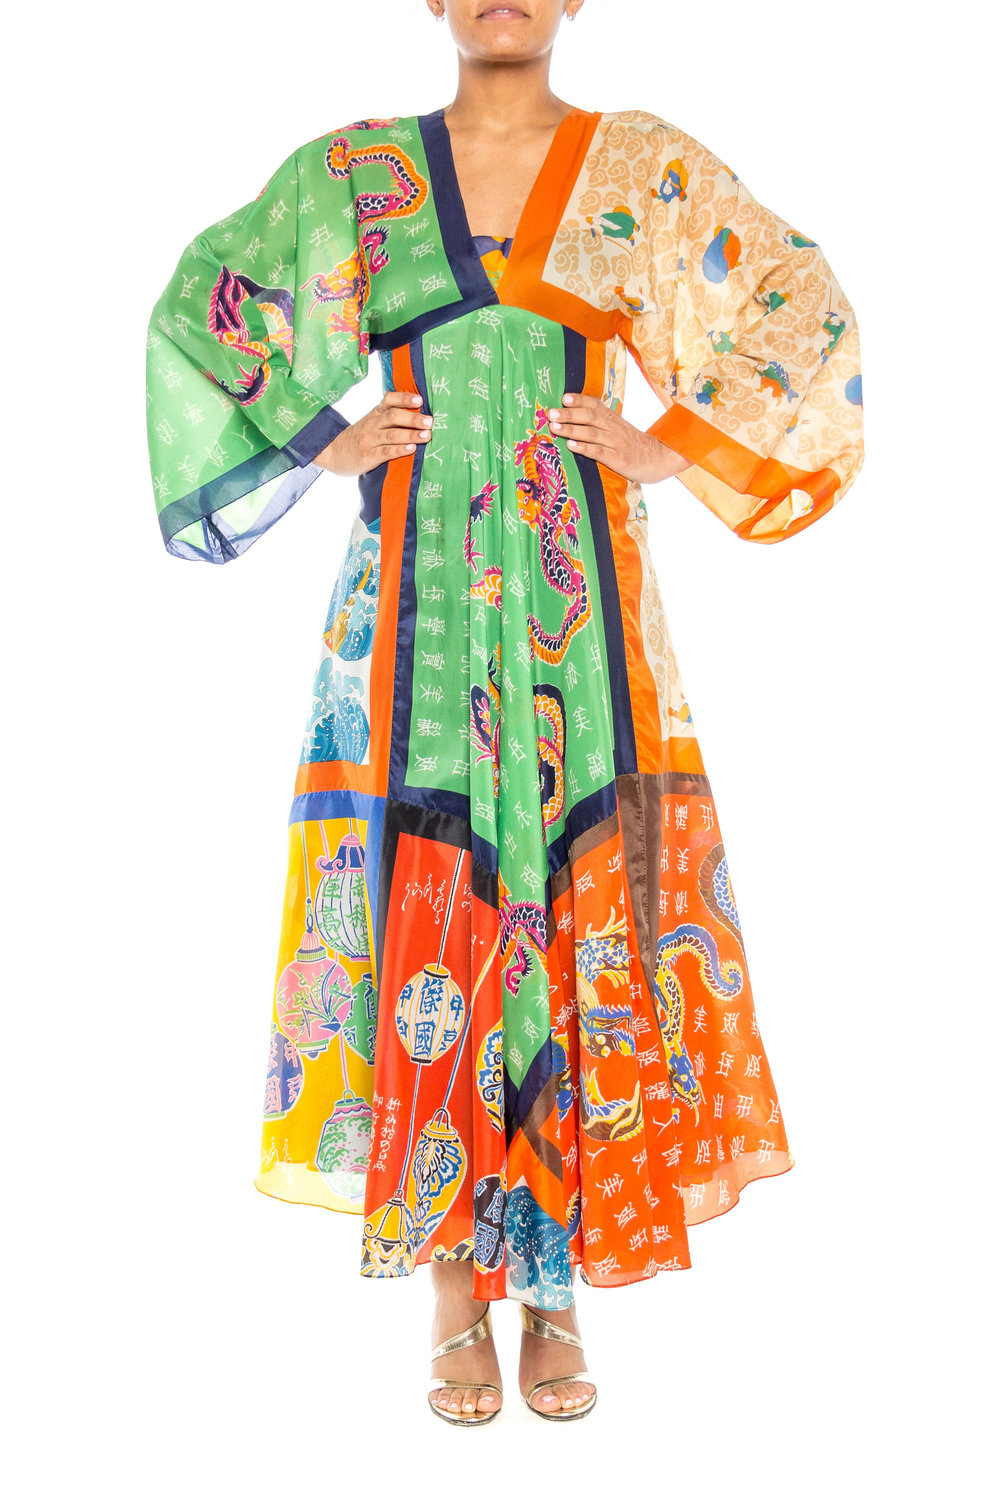 70s Asian Dragon Scarf Dress from Shop Morphew